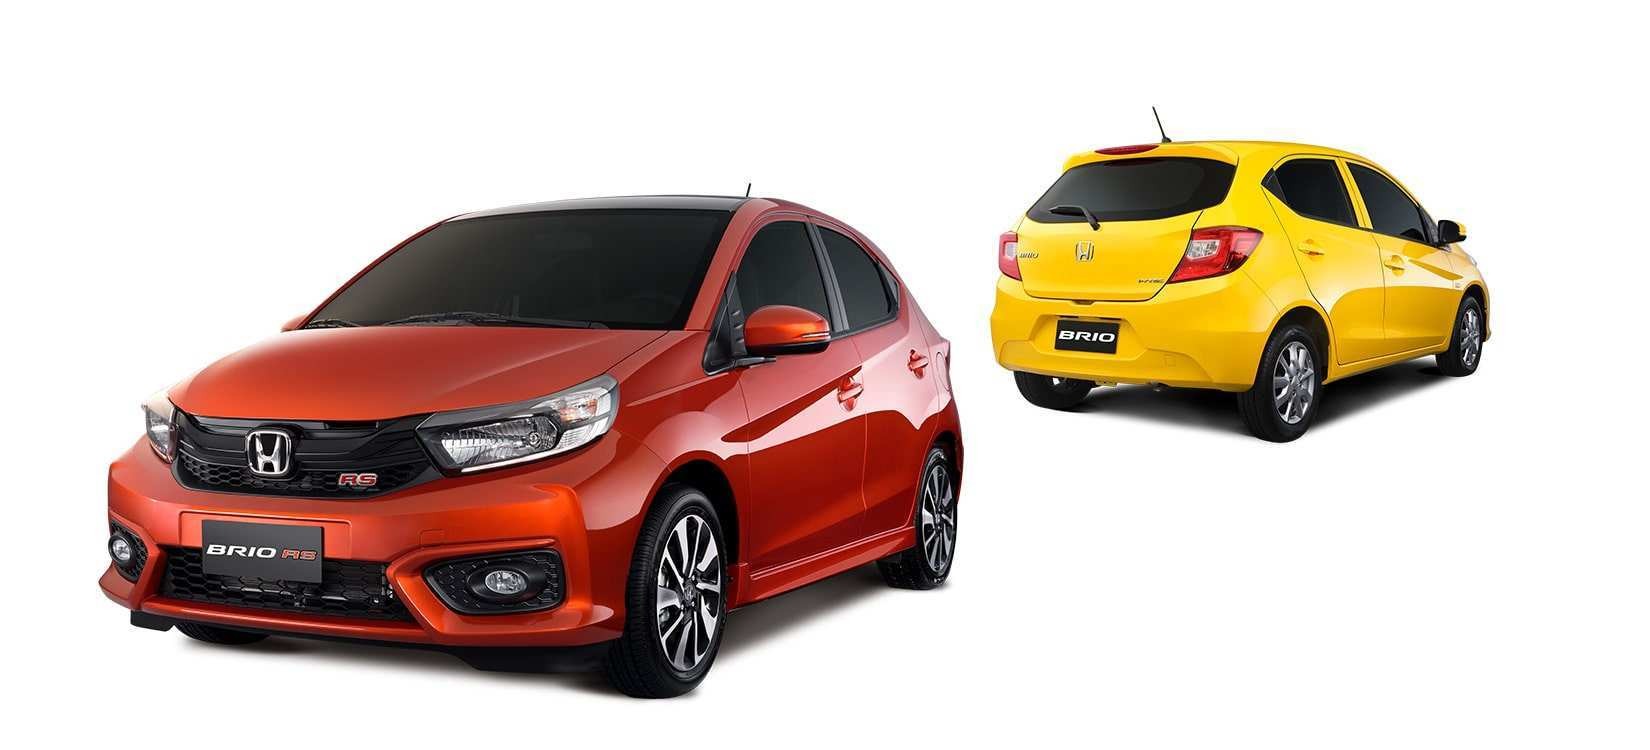 18 All New Honda Brio 2019 Performance